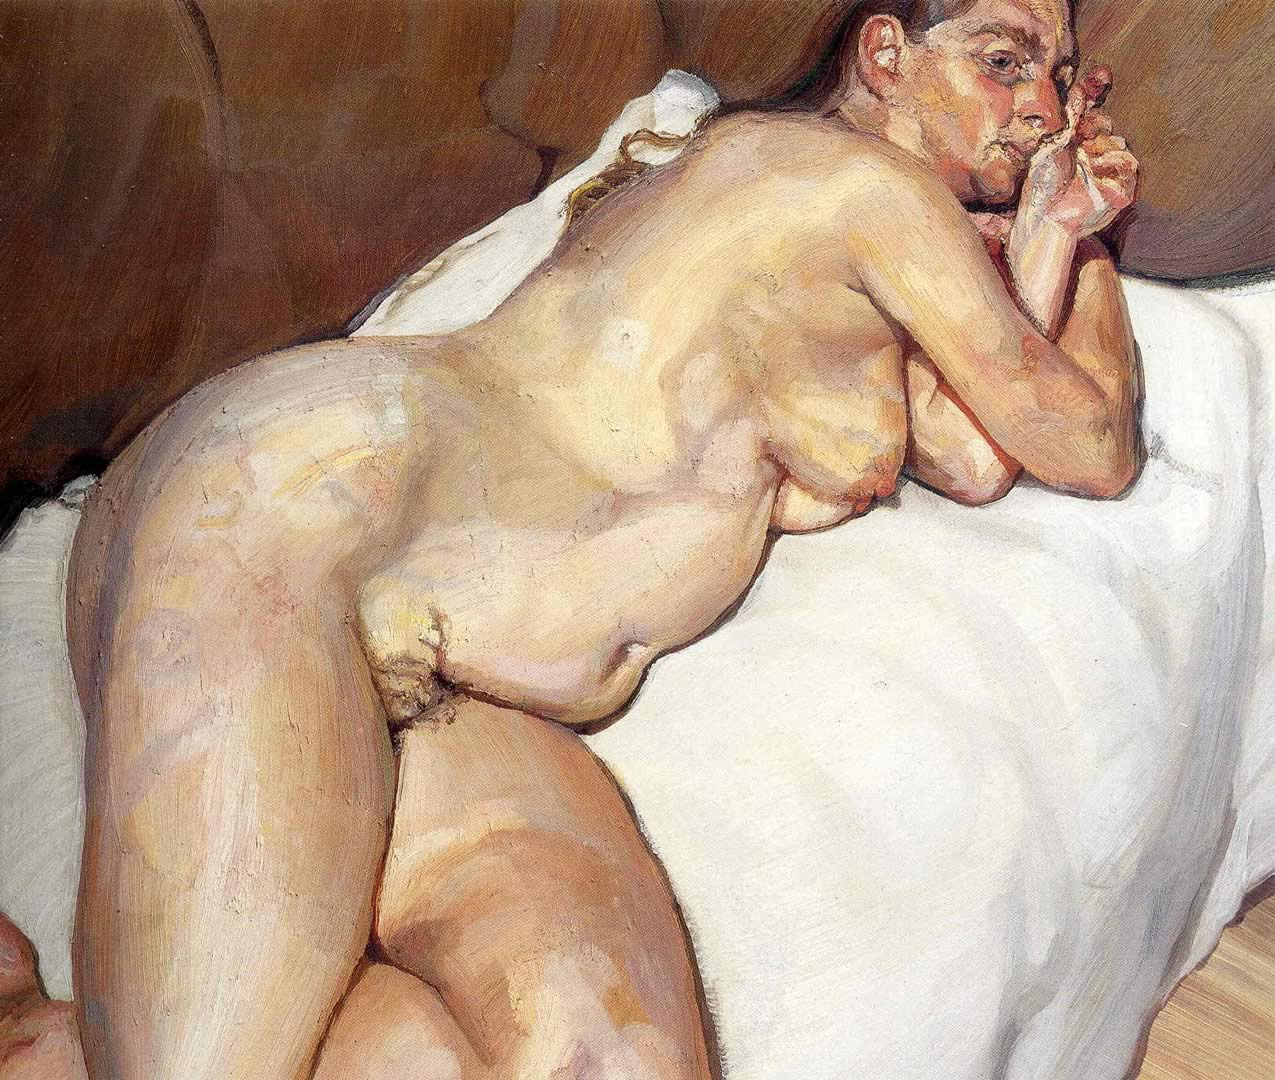 Nude nacked women naked woman